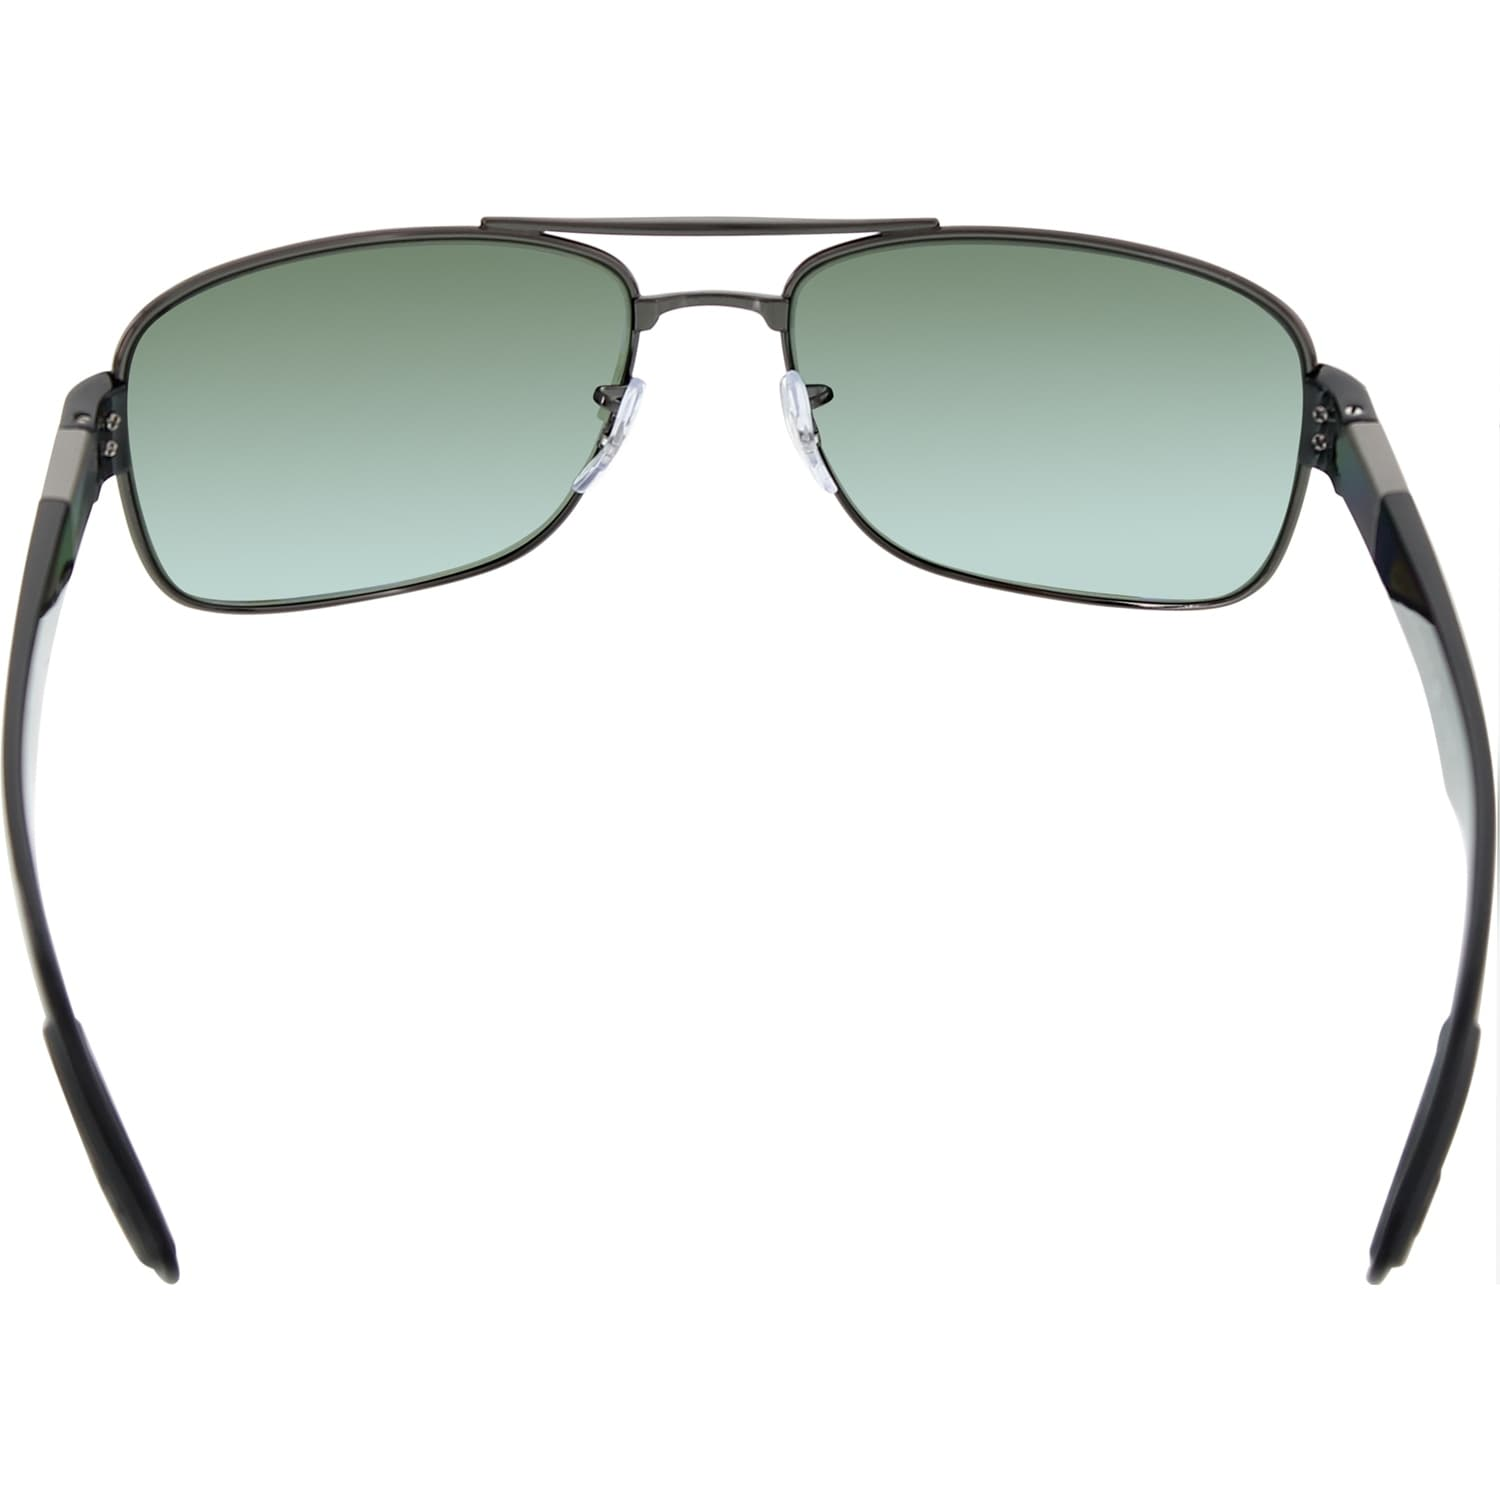 15539e517e ... canada shop ray ban mens polarized rb3522 rb3522 004 9a 61 silver  rectangle sunglasses free shipping